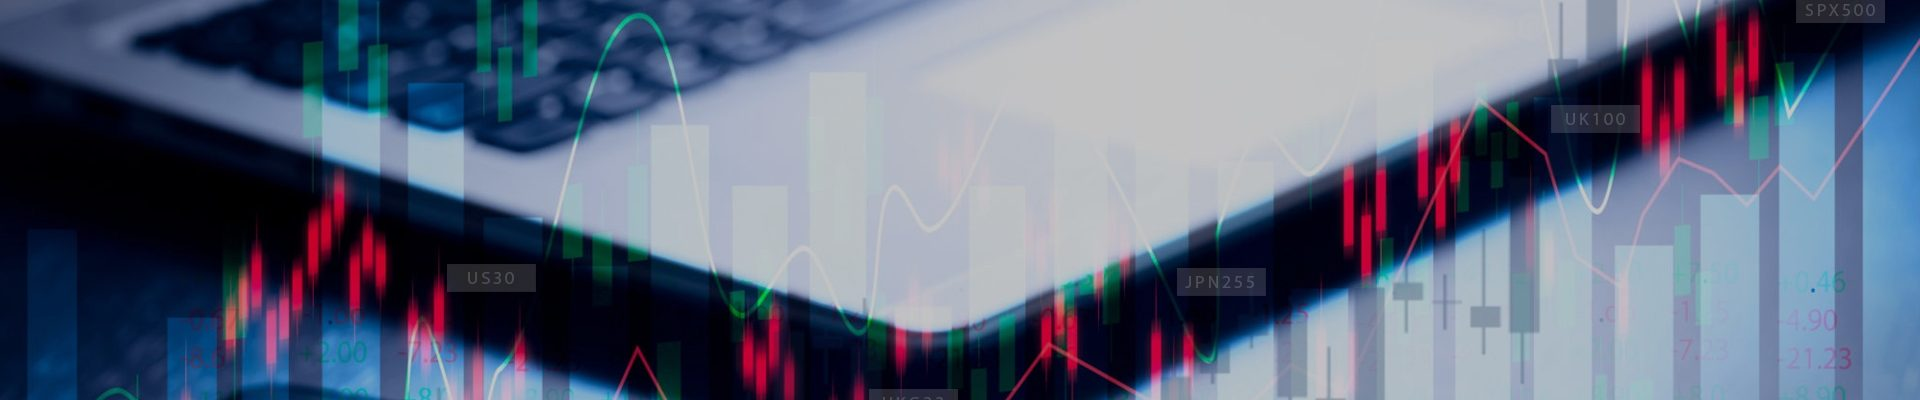 final-Indices-banner